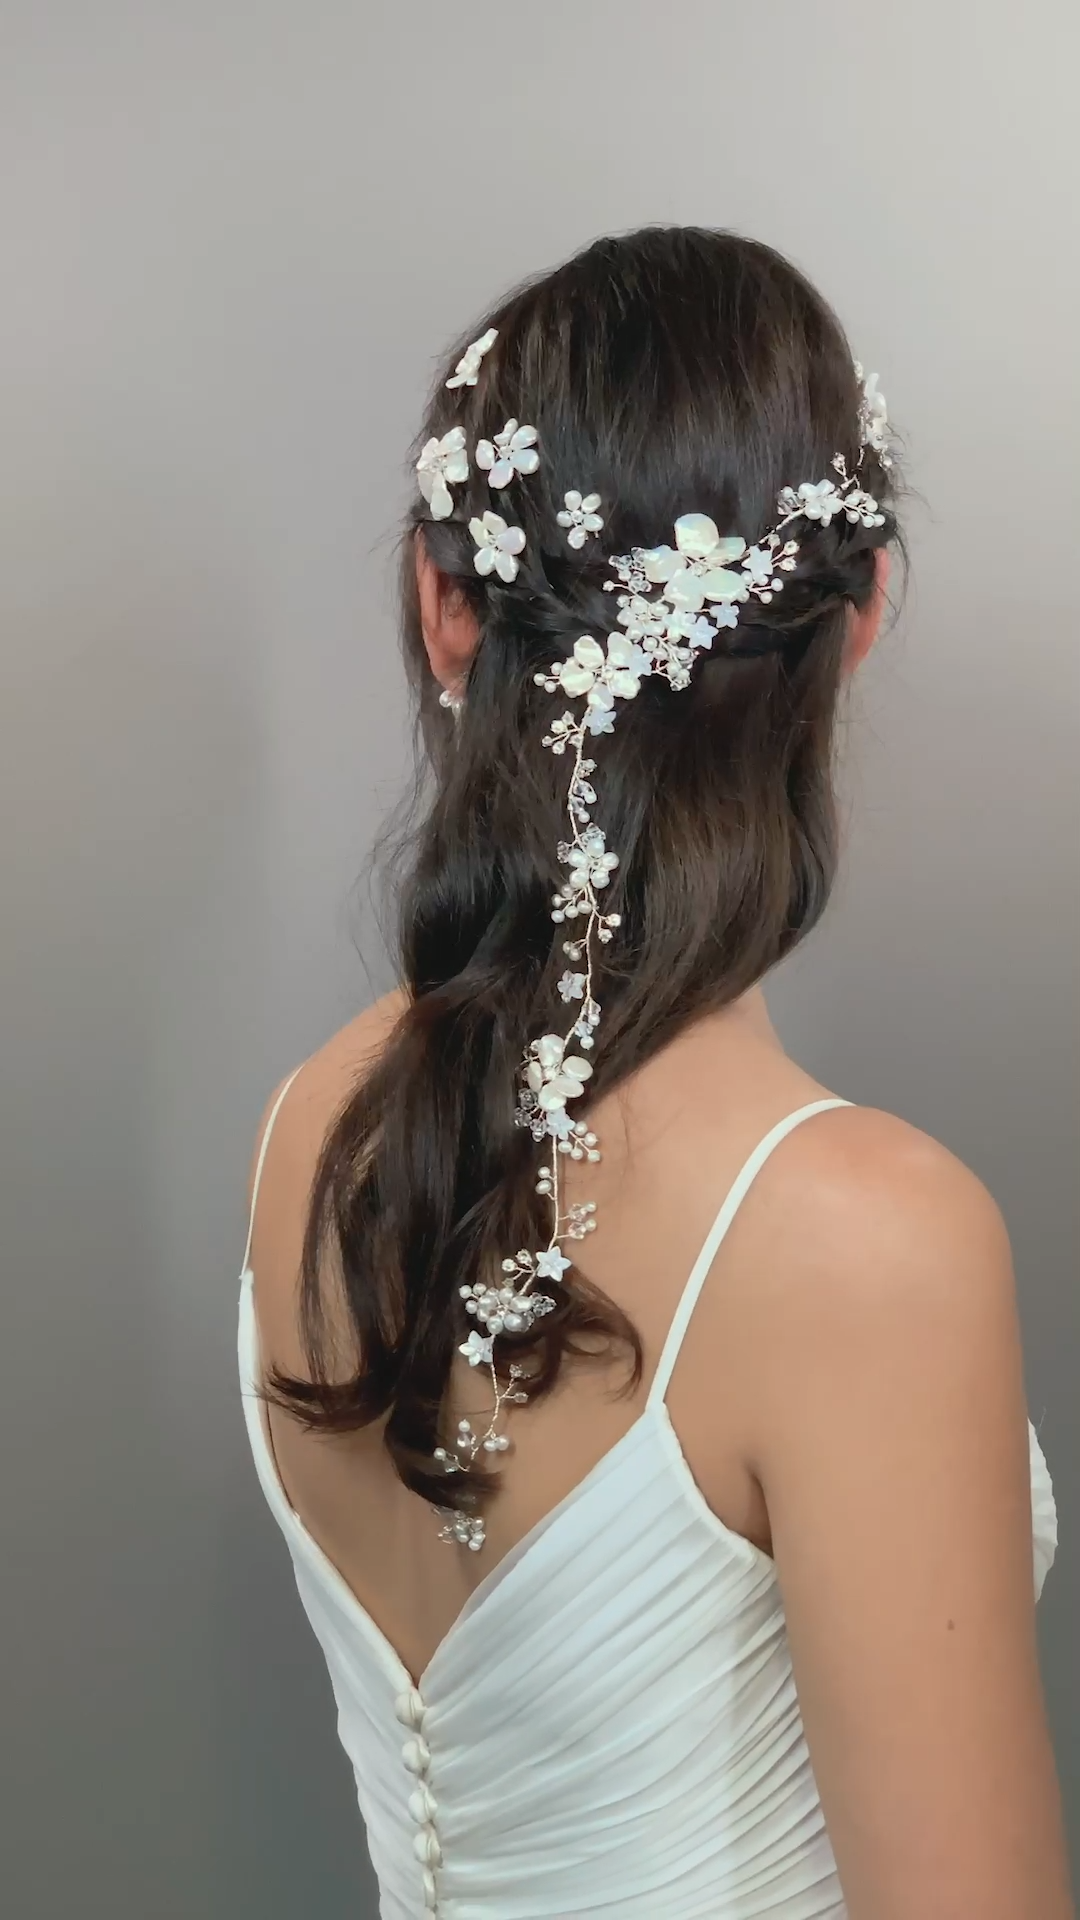 FLEURETTE GARLAND & BLOSSOM HAIRPINS HERMIONE HARBUTT-Whimsical Fairytale Bohemian Bride Hairstyle